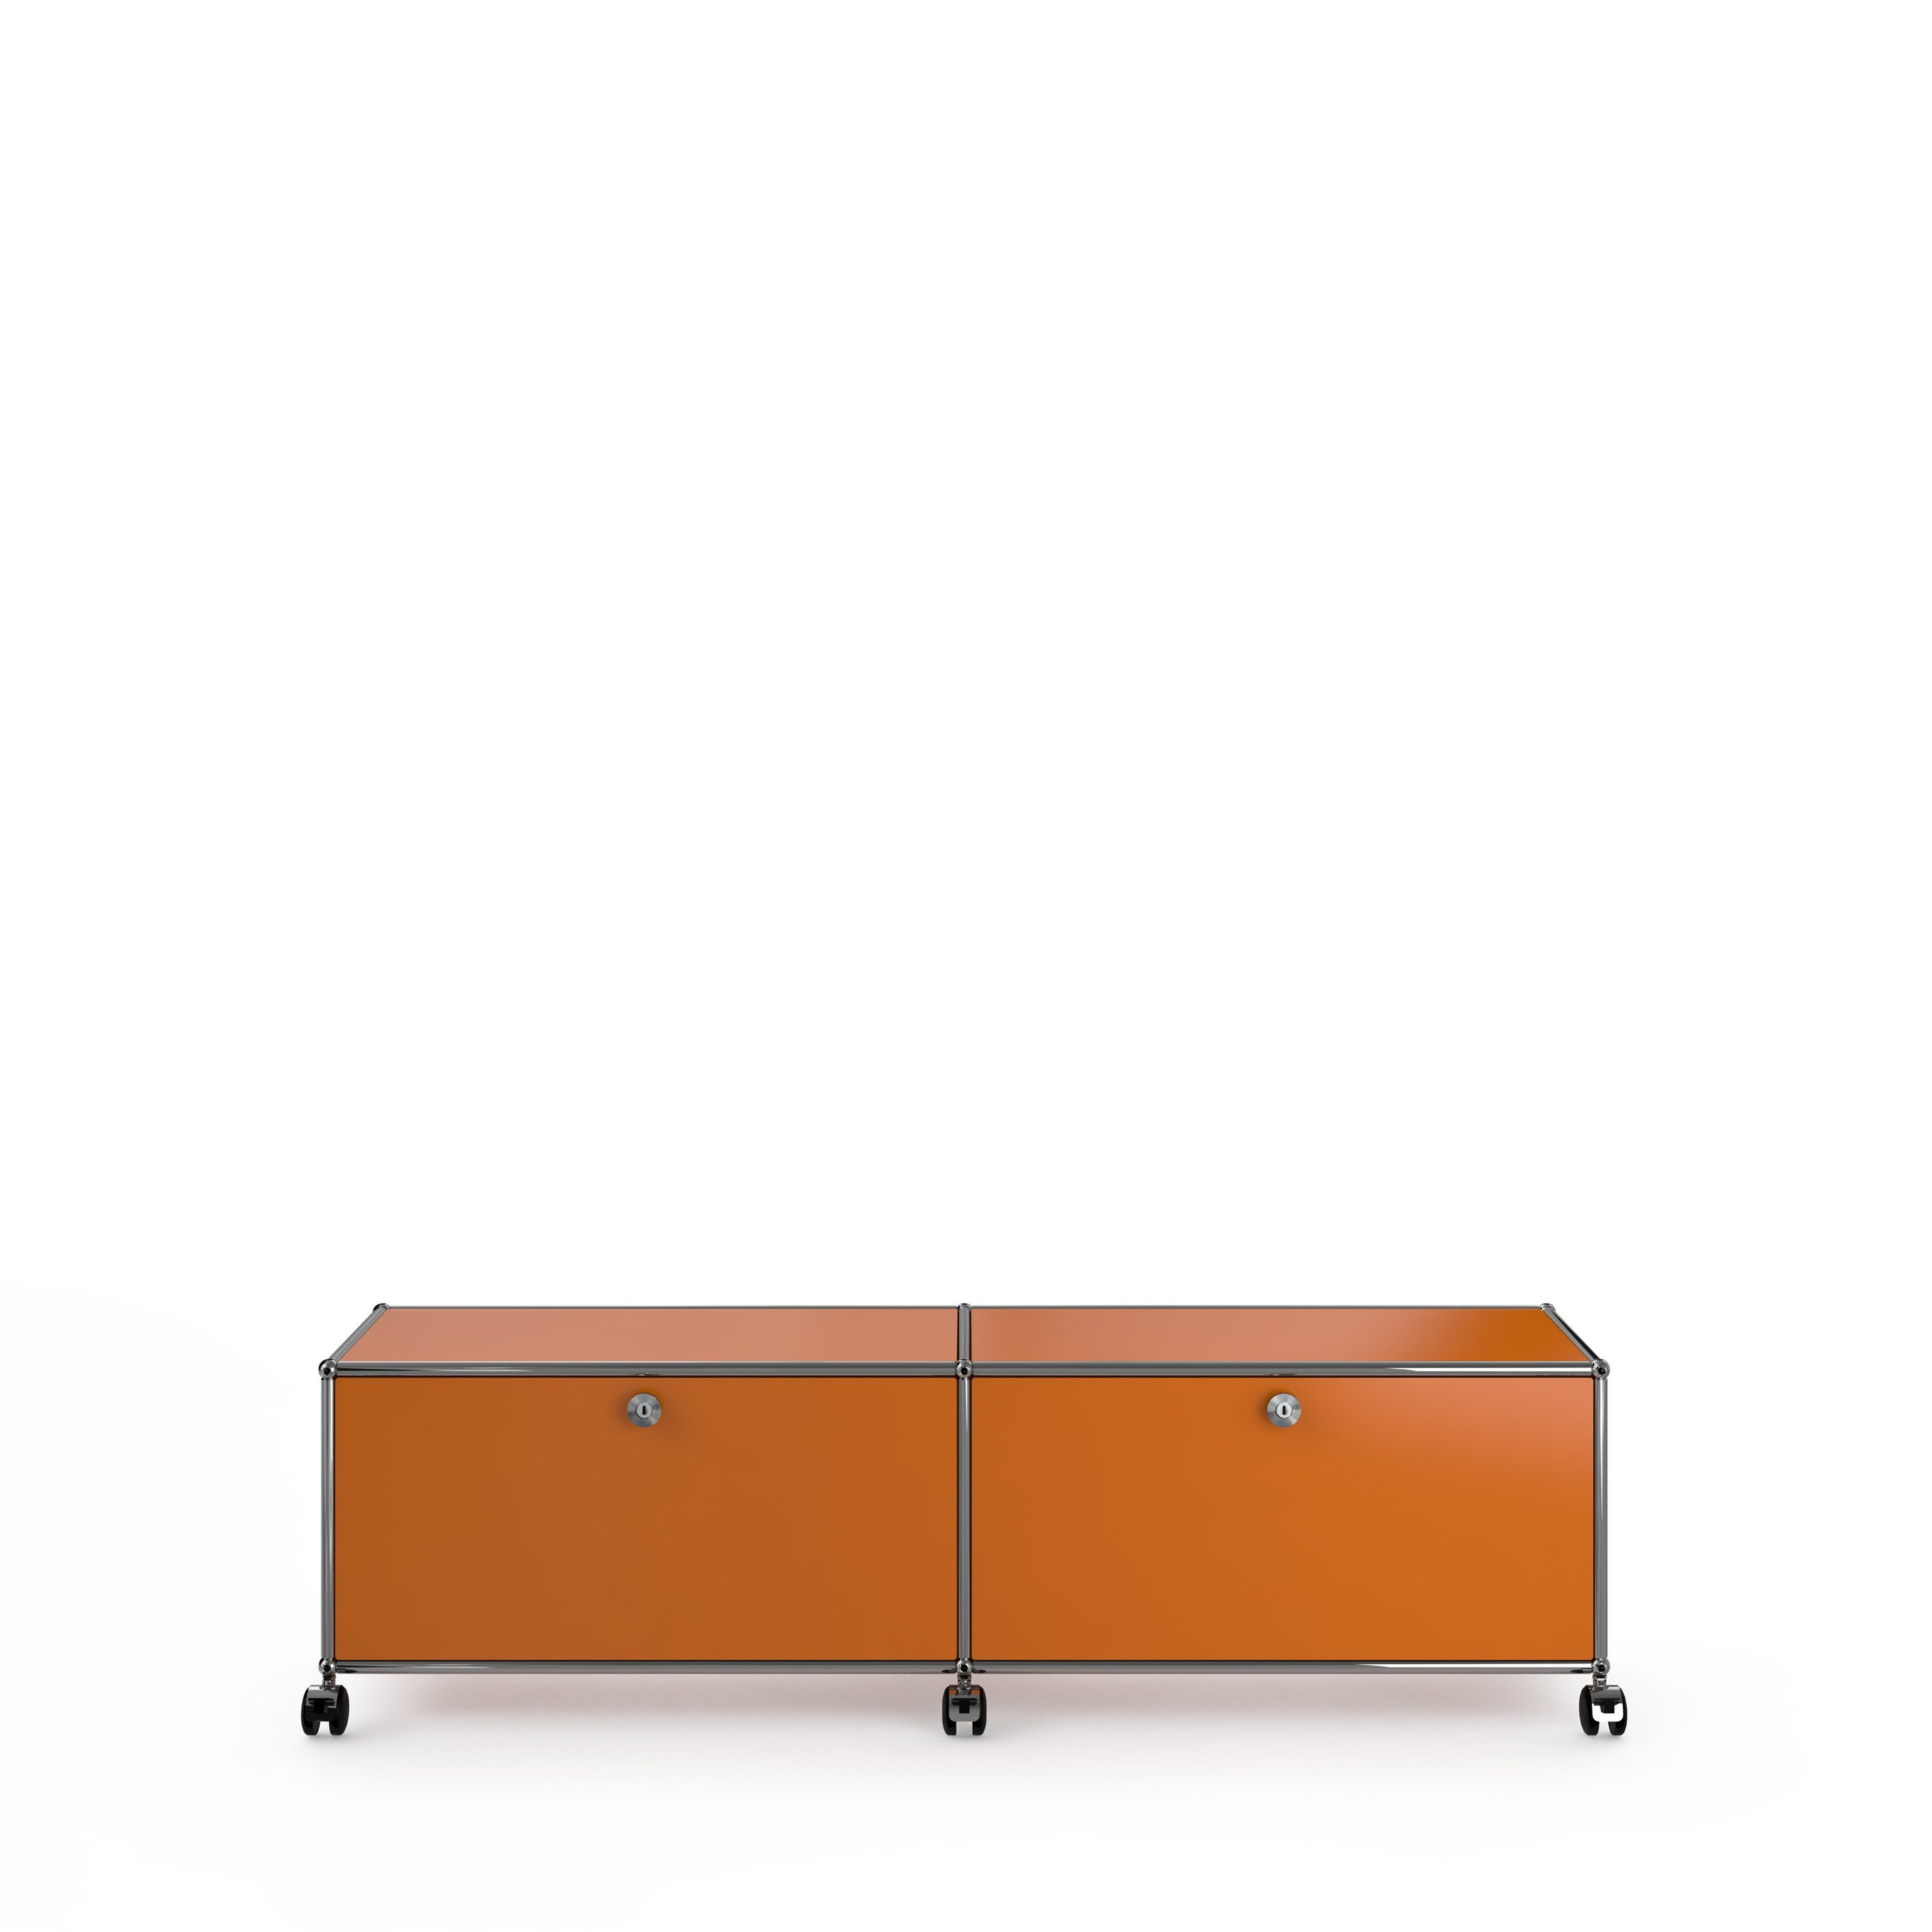 Usm haller lowboard as media unit sideboard by usm modular for Sideboard usm